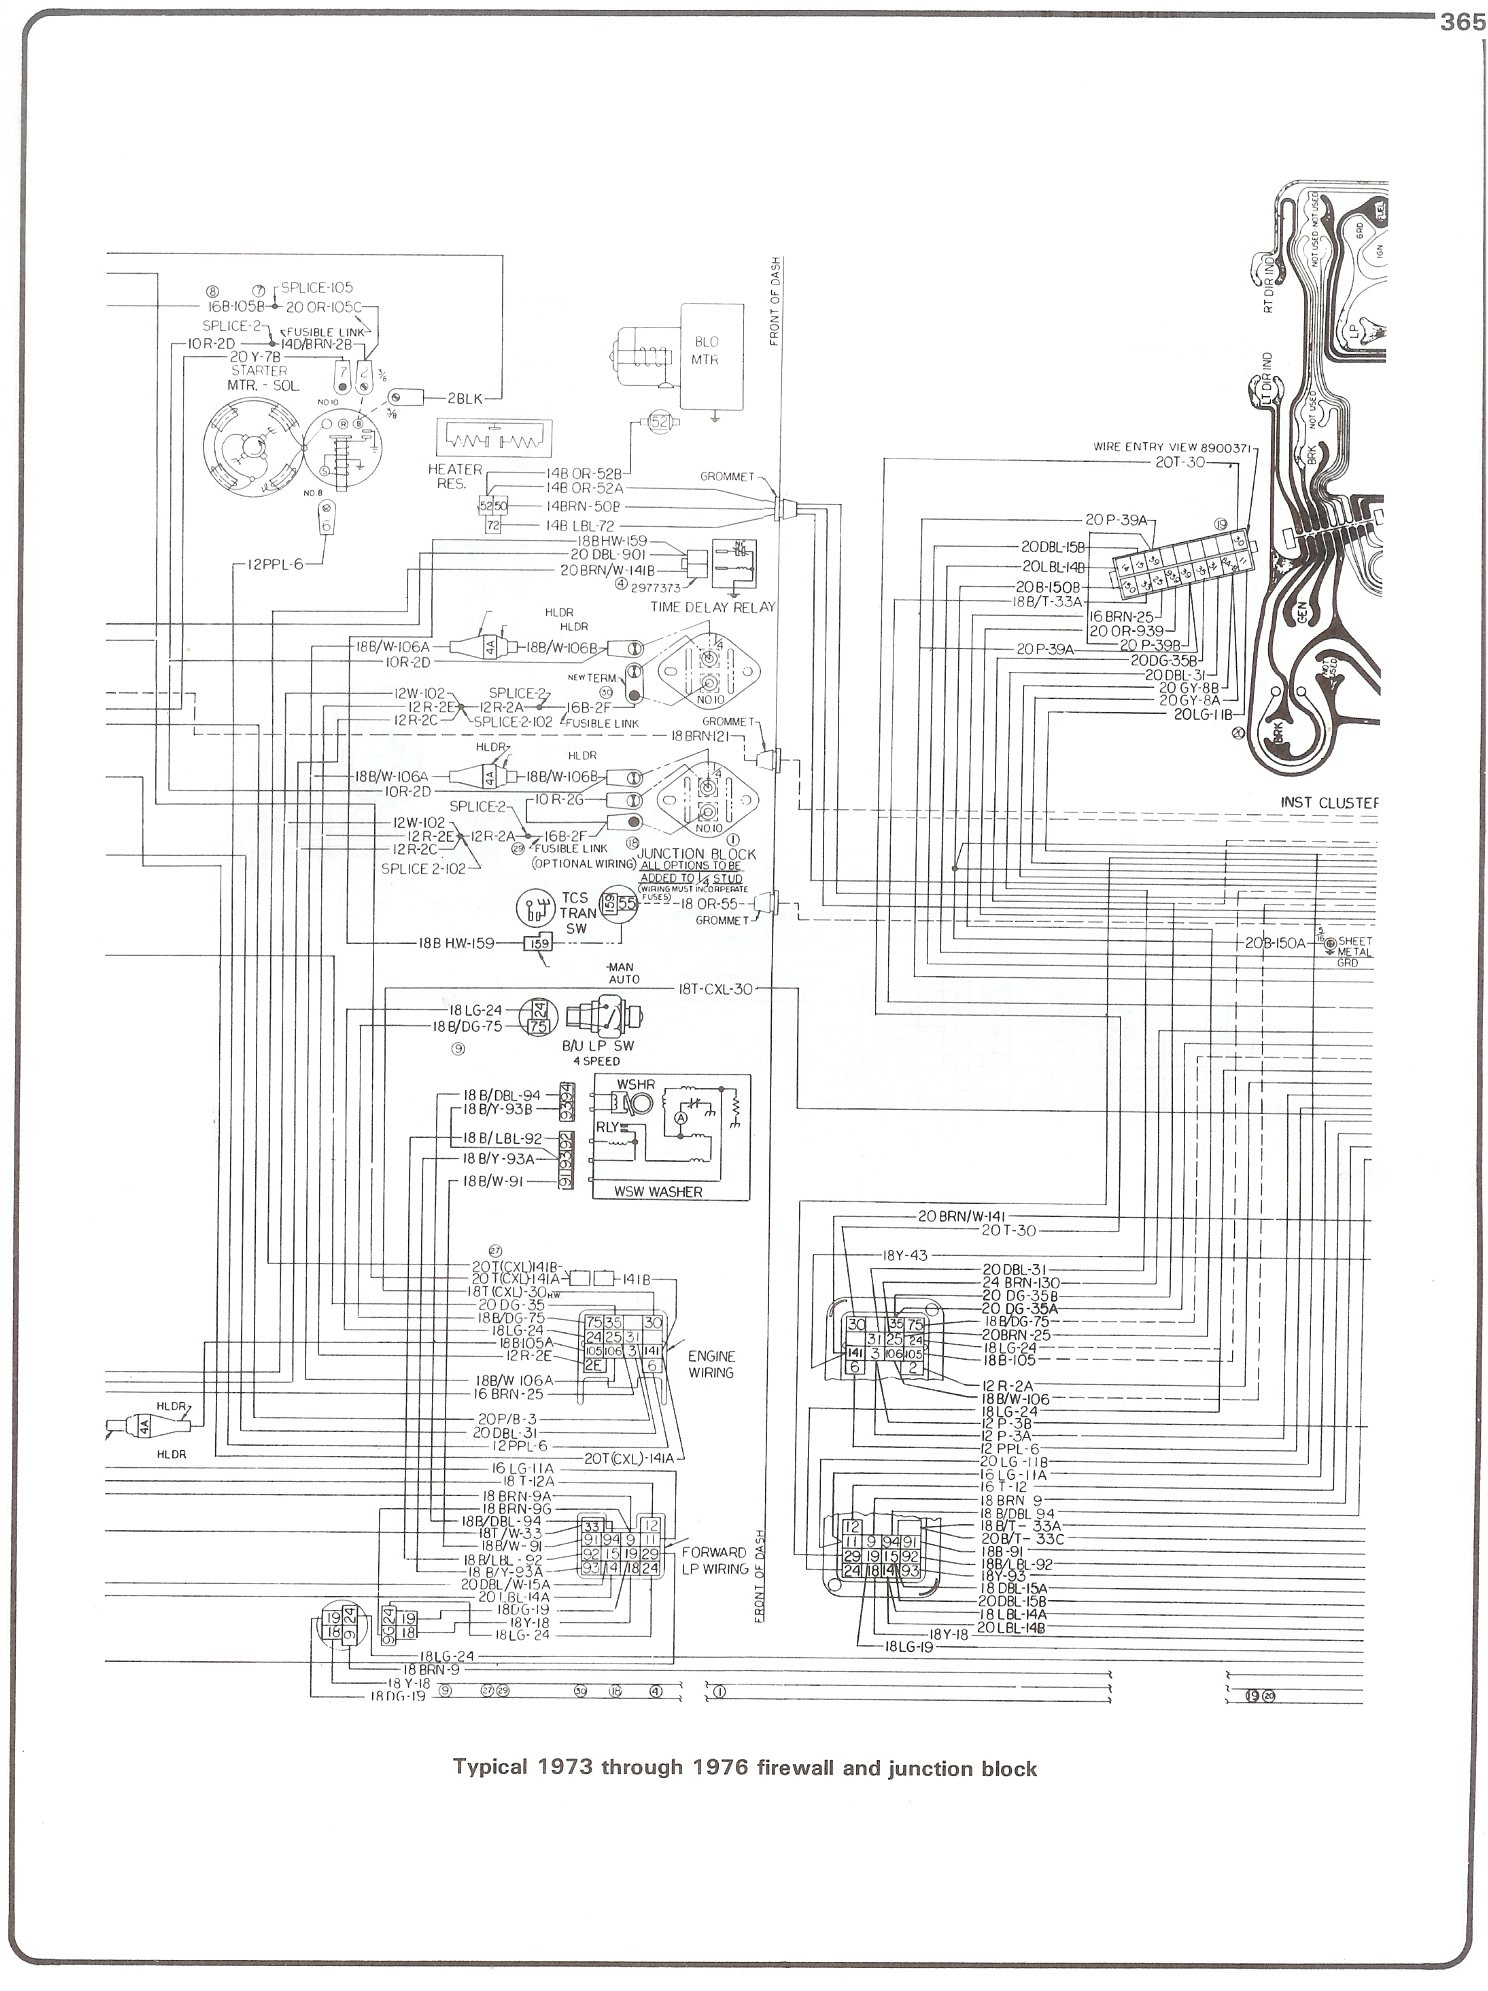 75 chevy caprice wiring diagram